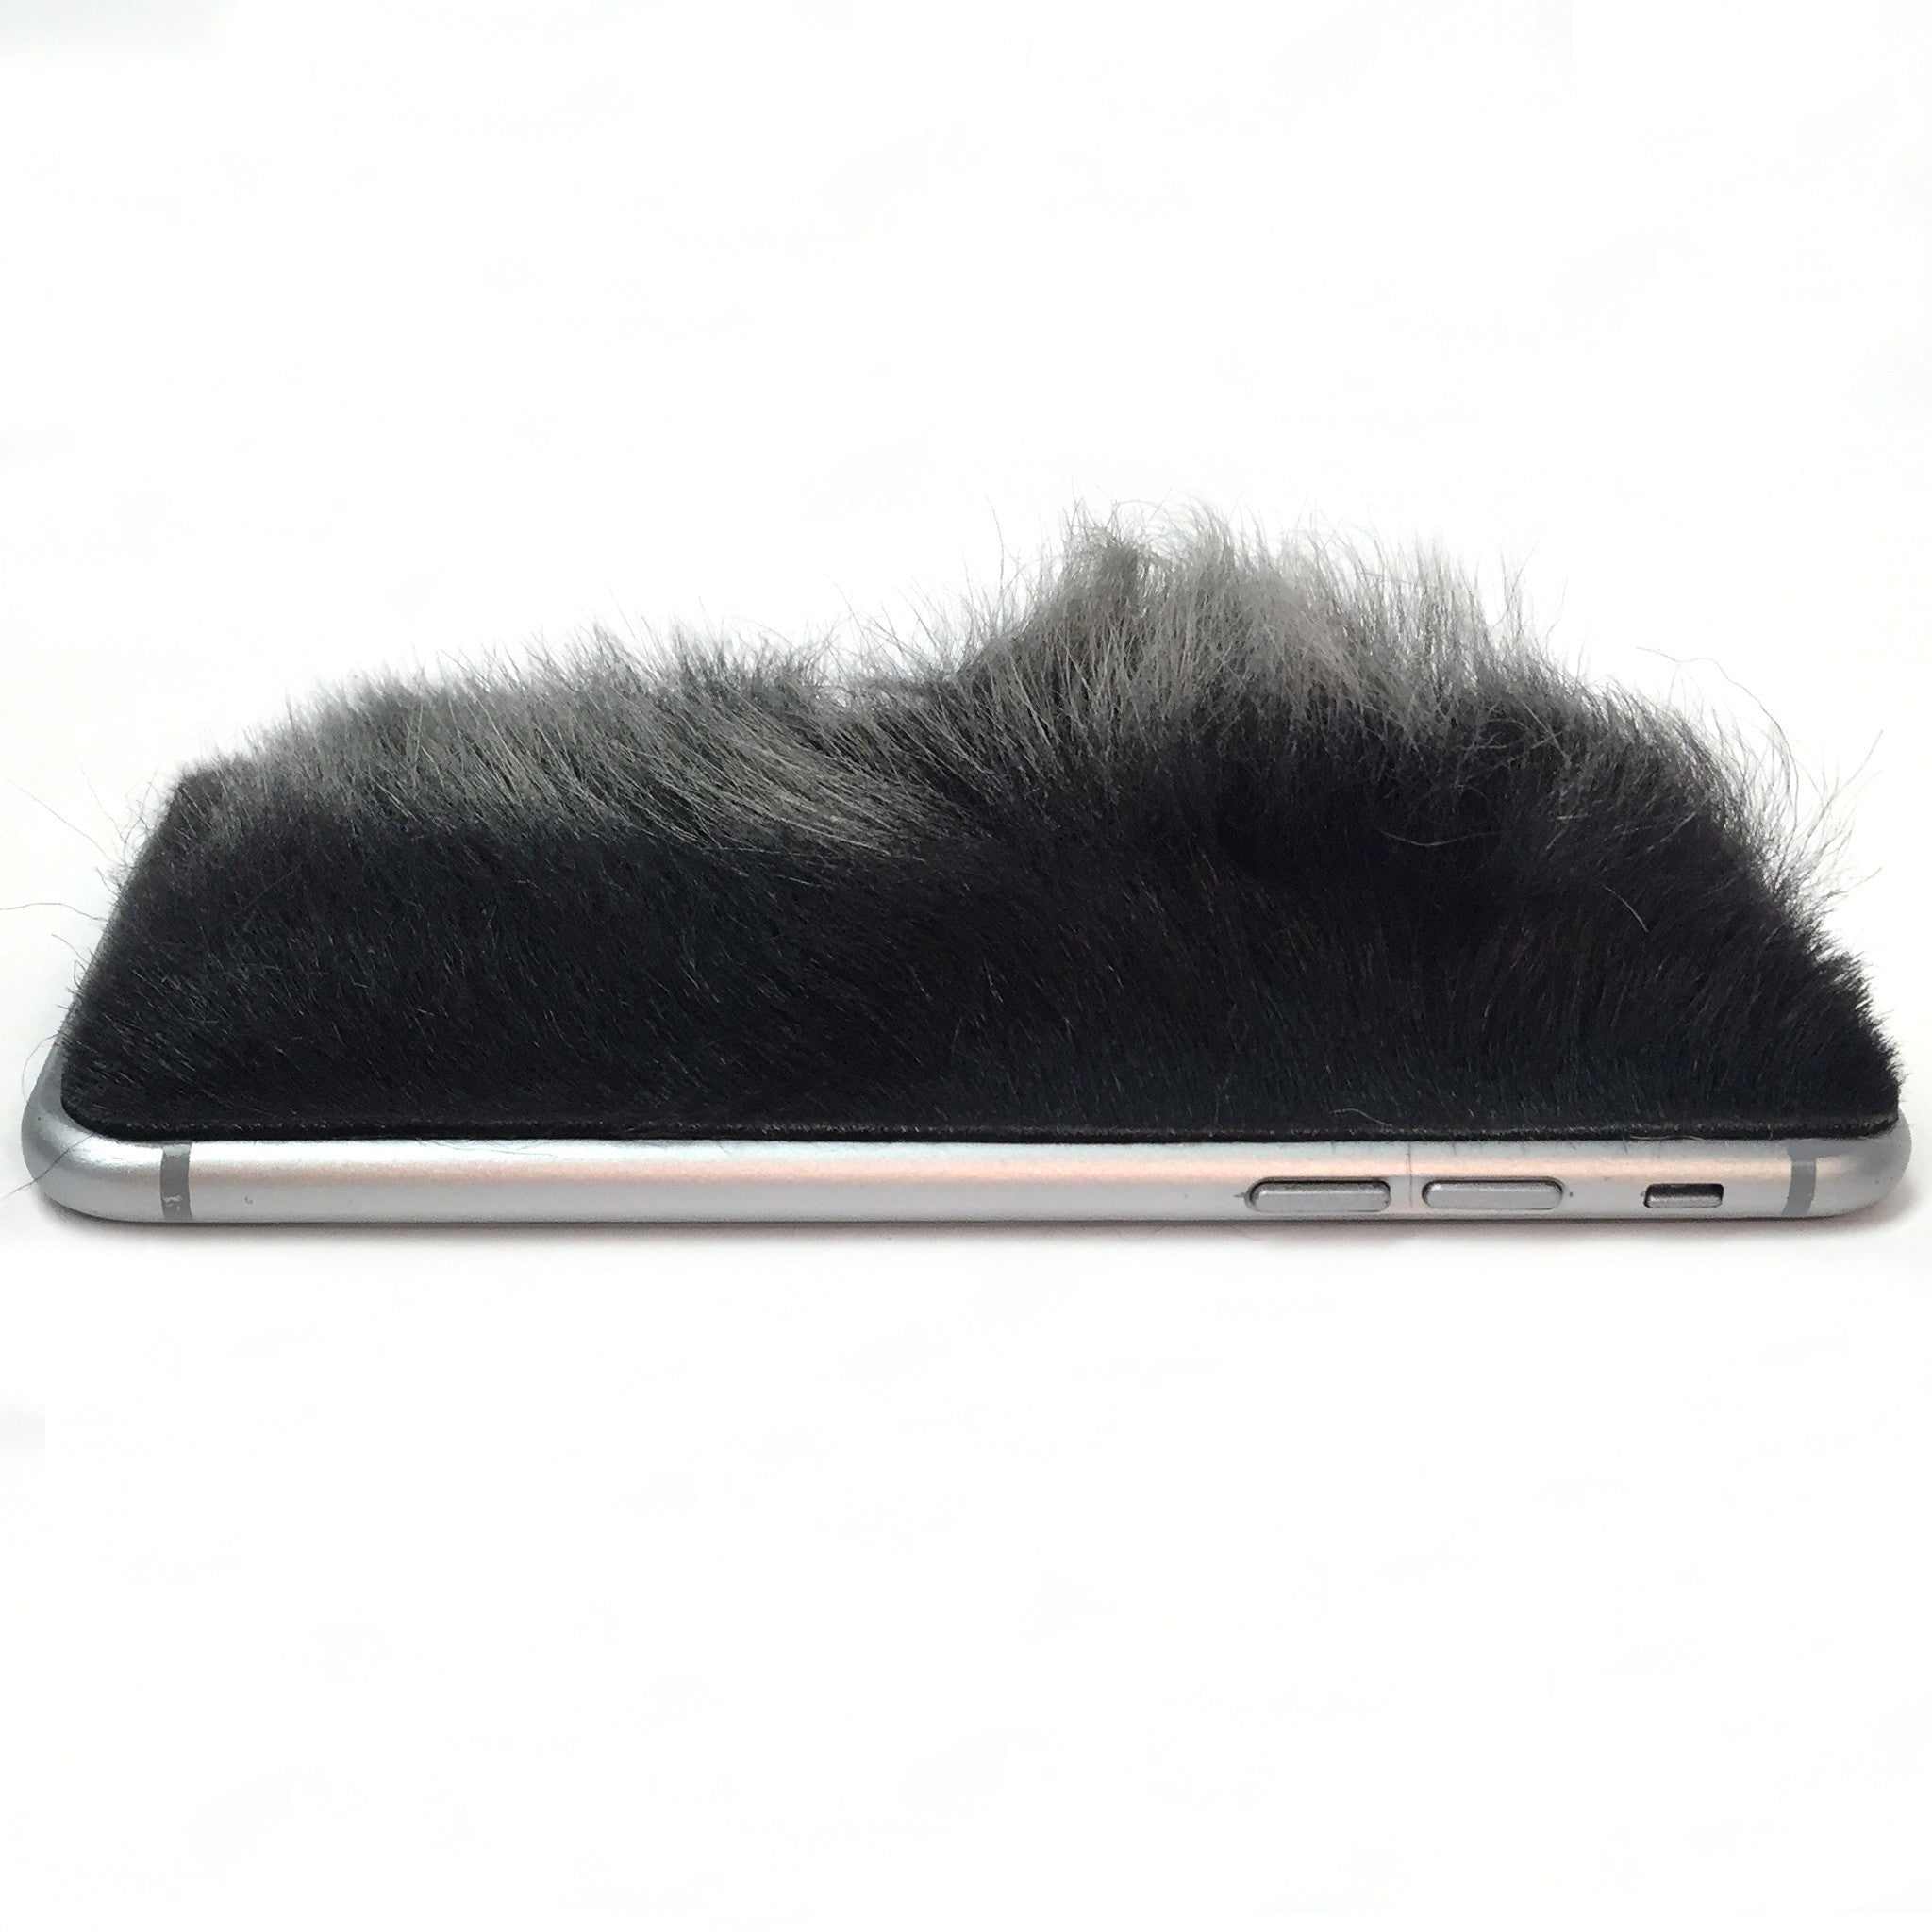 Two Tone Black Sheep Fur iPhone 6/6s Leather Skin